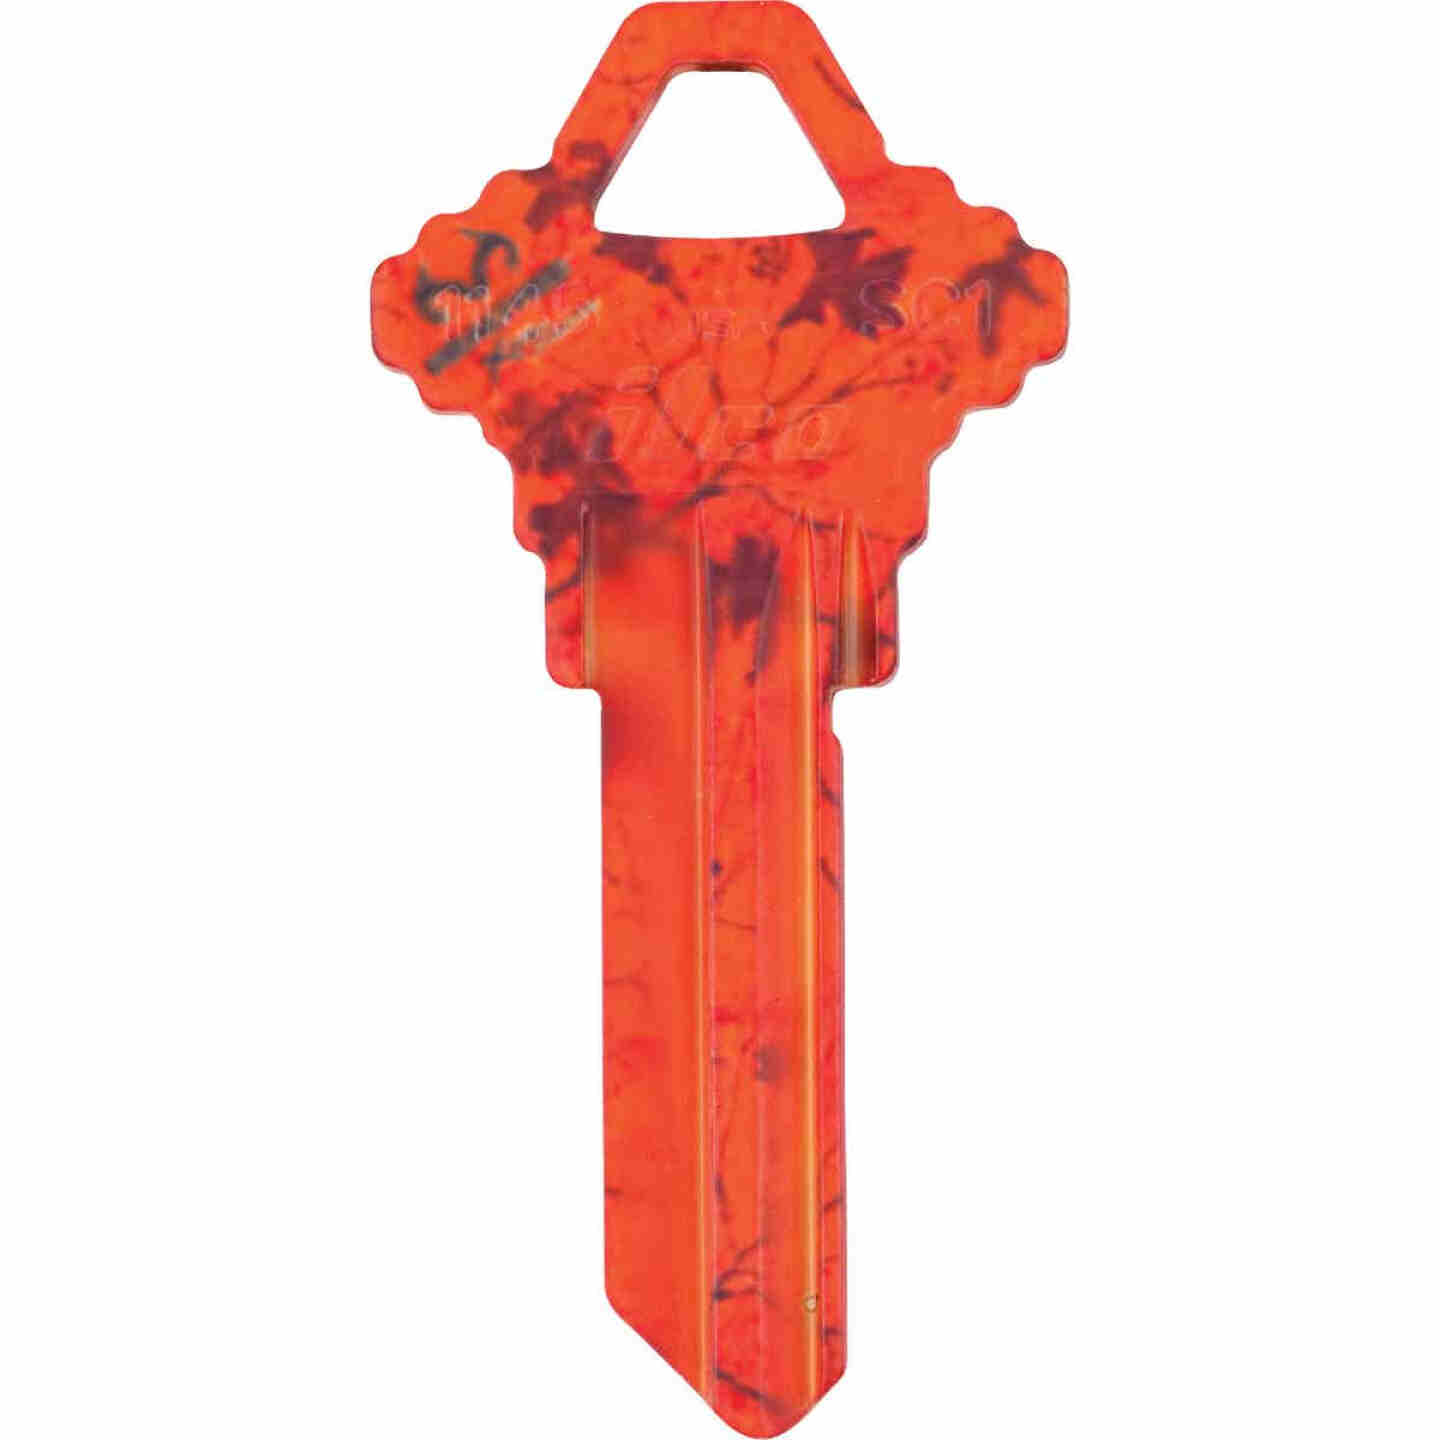 ILCO Schlage Realtree Blaze Orange Design Decorative Key, SC1  Image 1